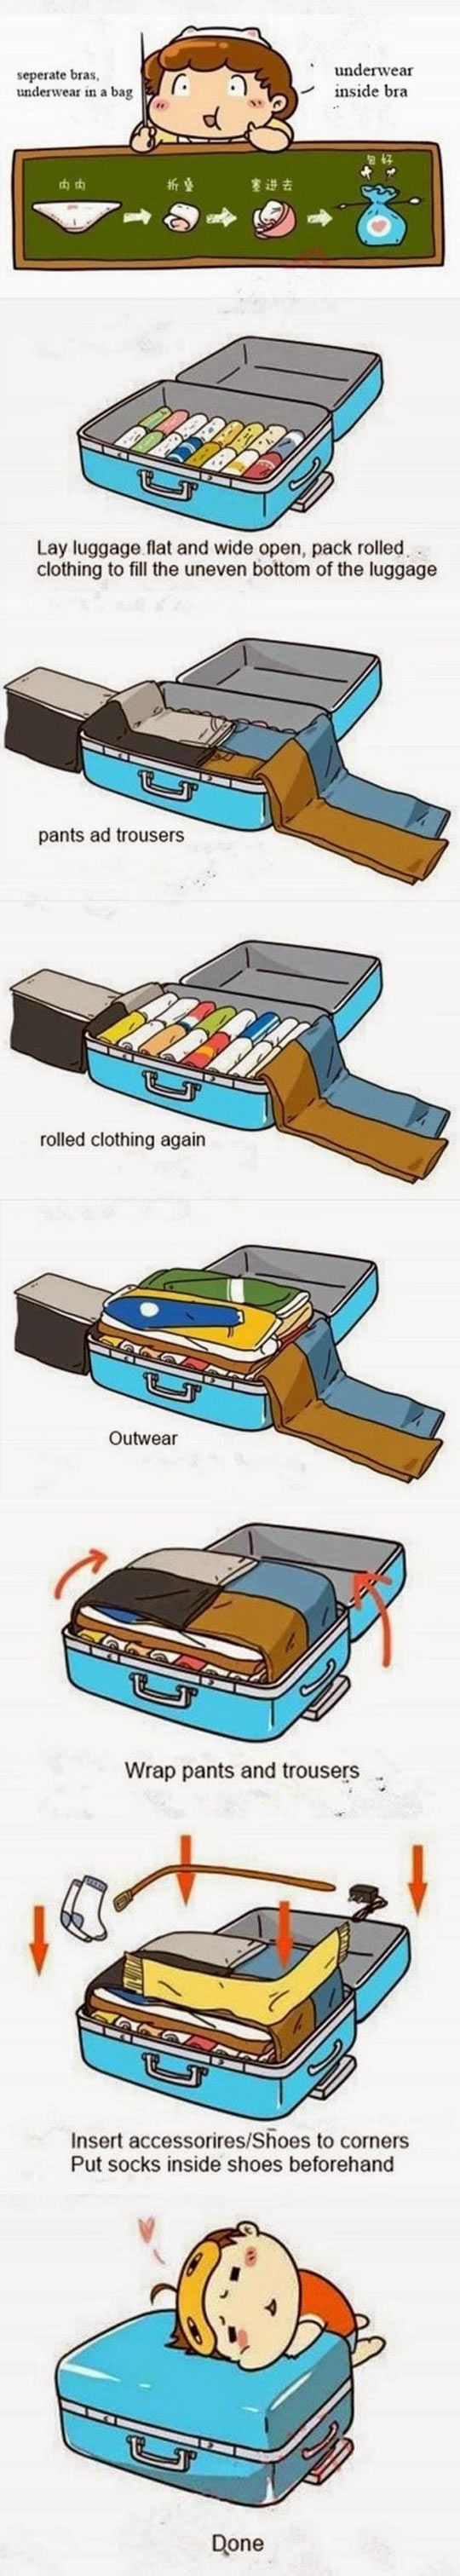 Best way to fold clothes for suitcase - Packing Luggage Properly